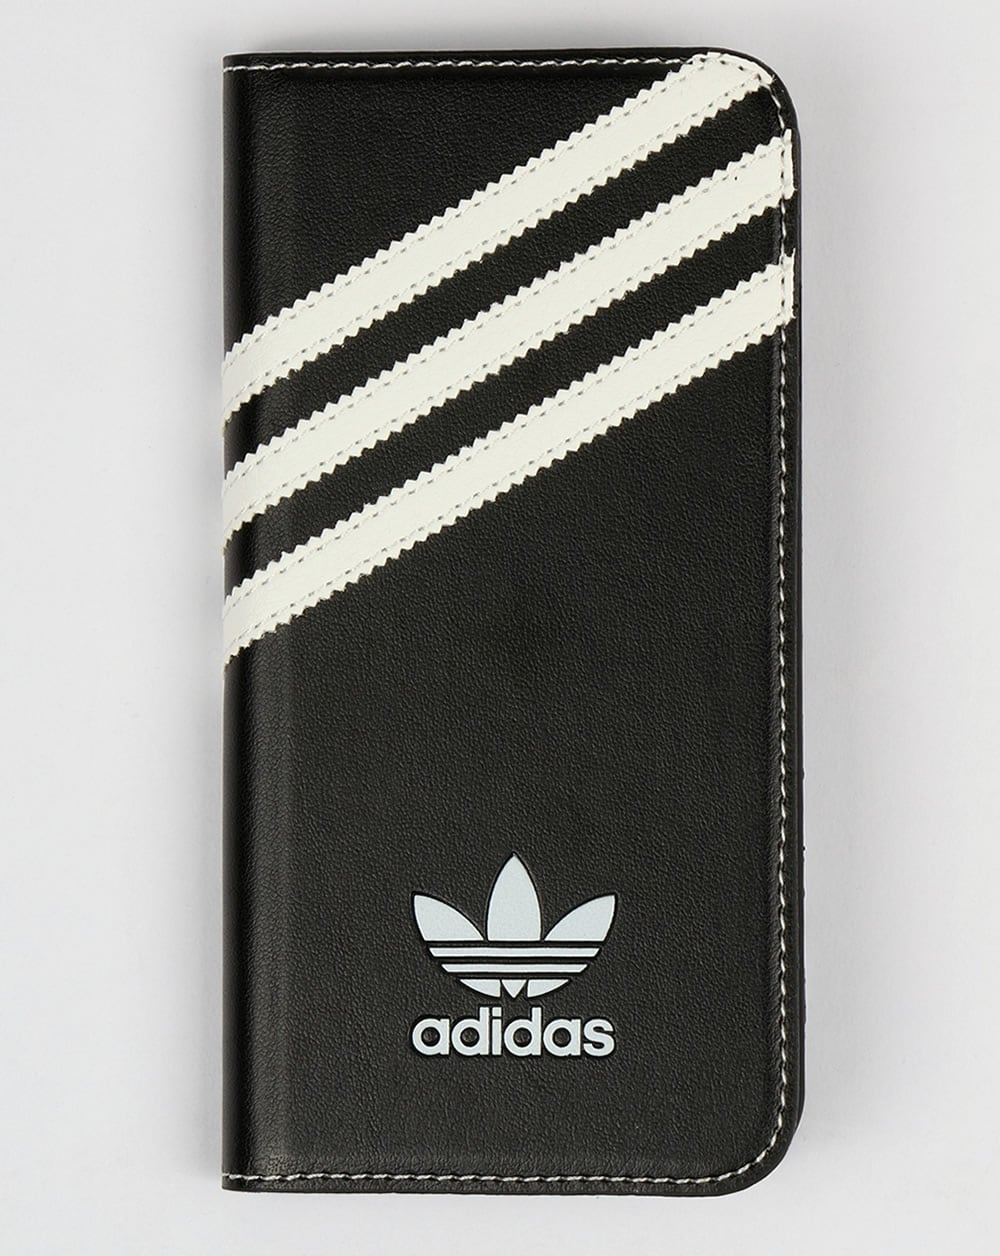 hot sales bdd2e e091d Adidas Originals iPhone 6 Booklet Case Black/White